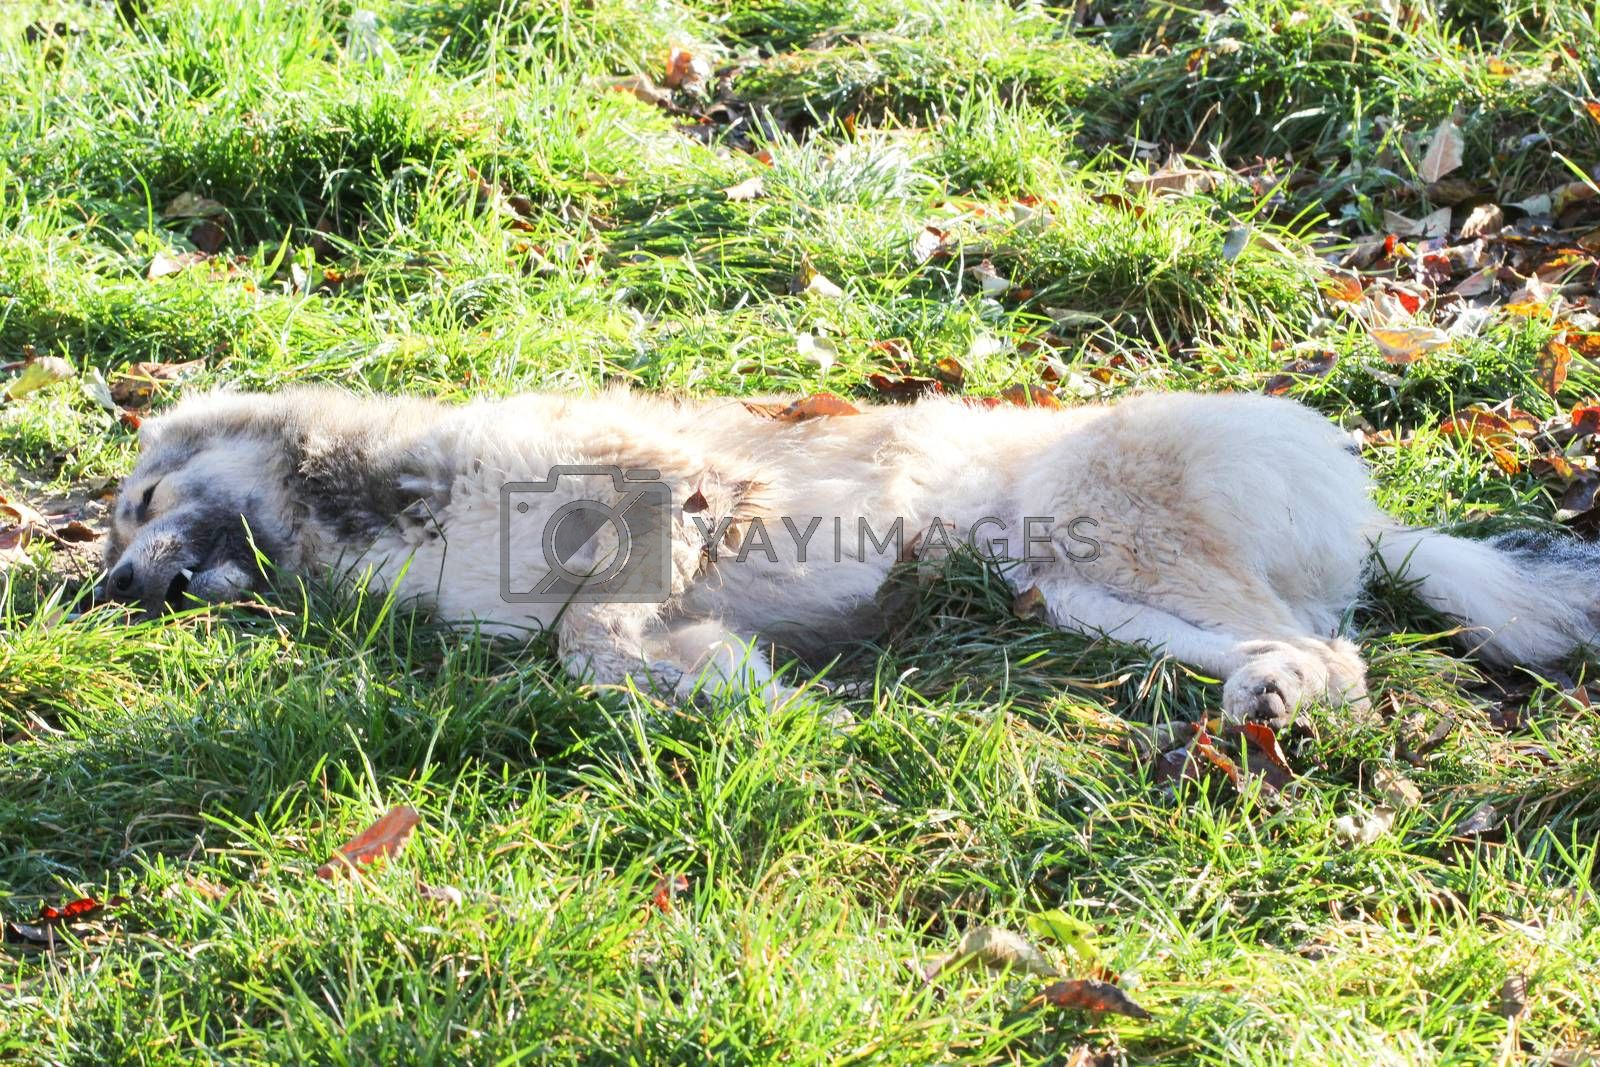 Poisoned dog on a grass in november morning. Save animals concept. by nehru